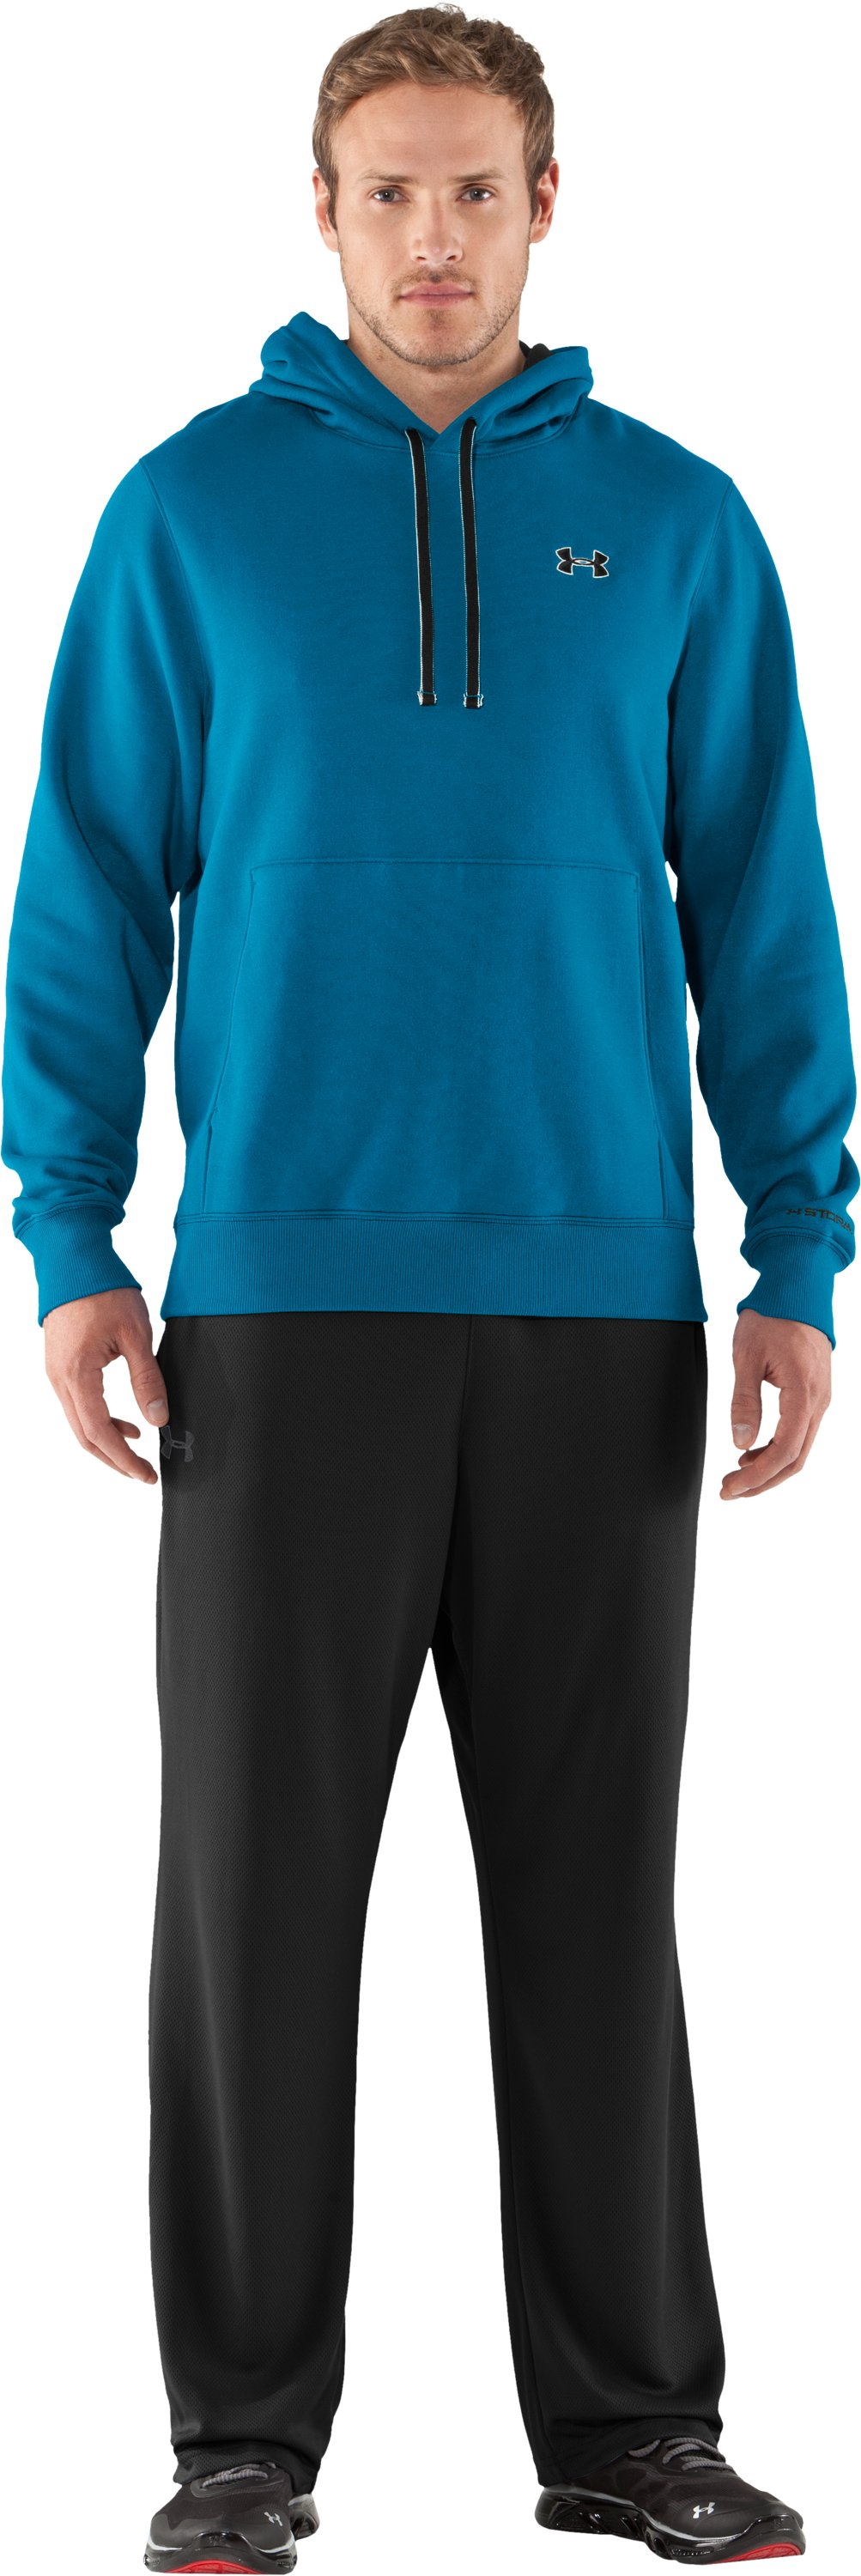 Men's Charged Cotton® Storm Transit Hoodie, SNORKEL, Front